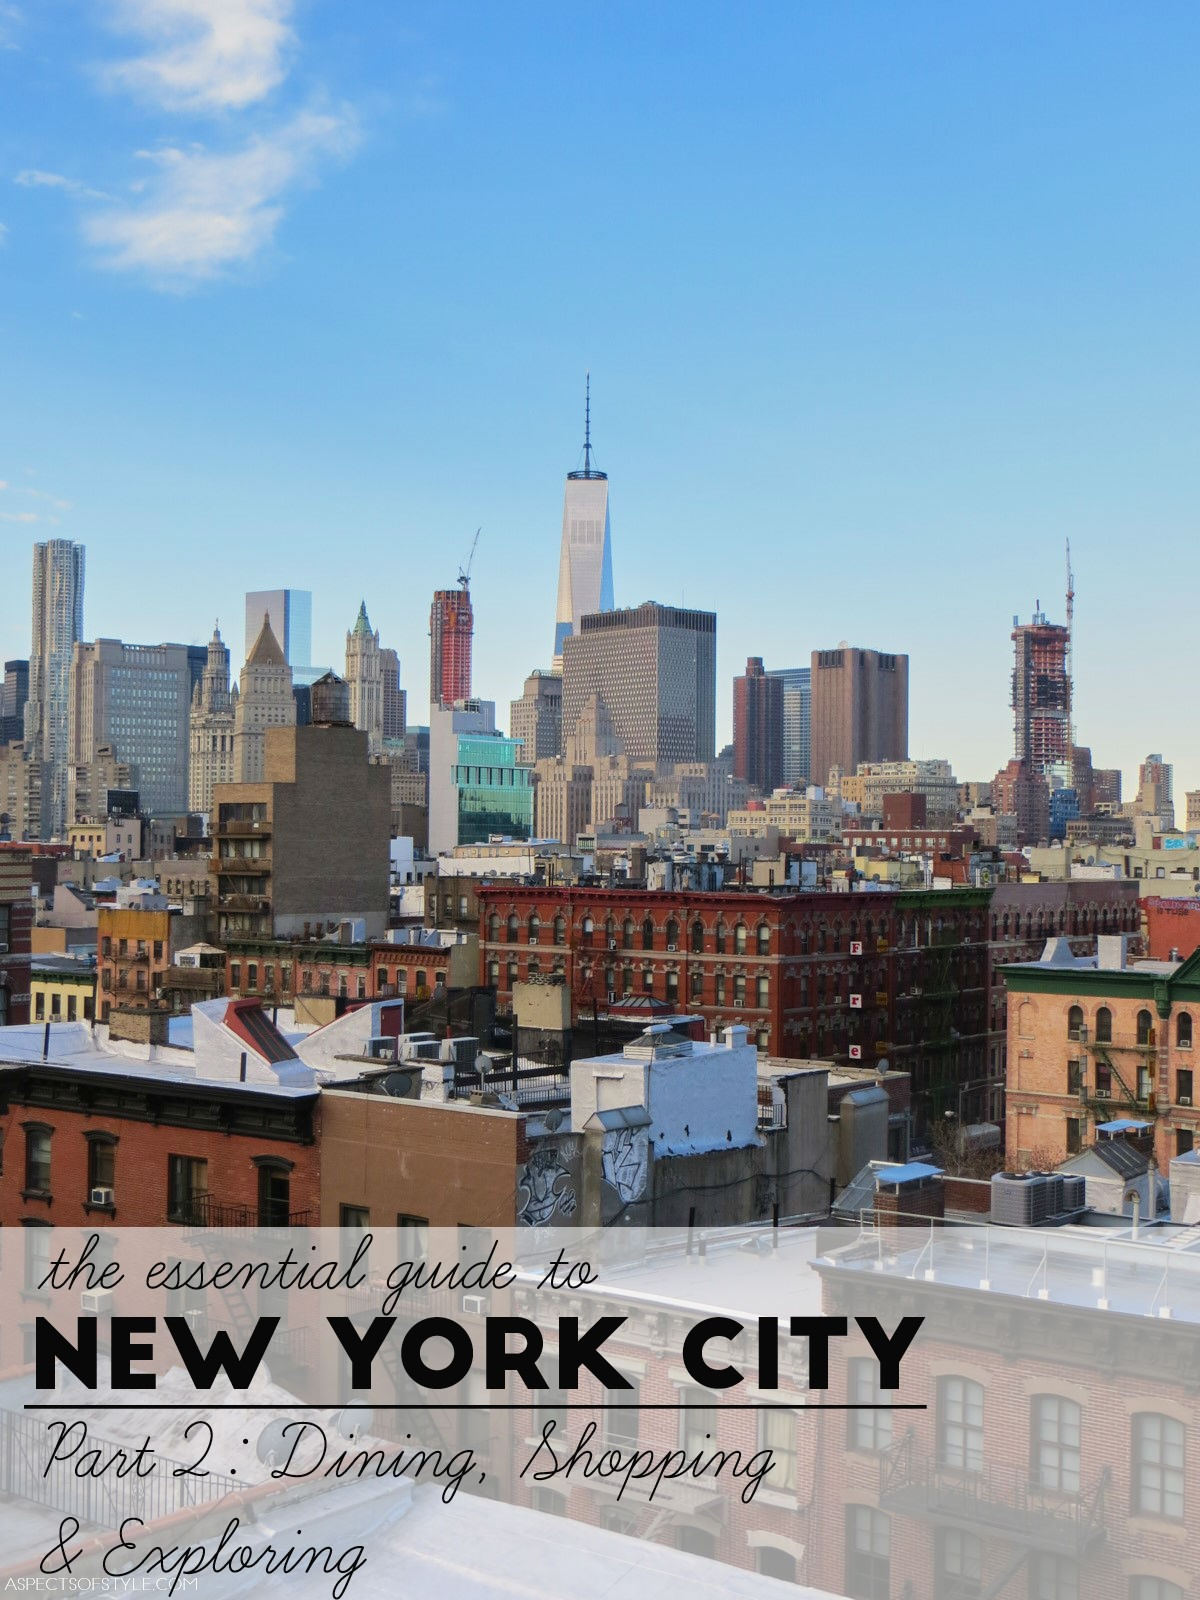 The Essential Guide to New York City: Shopping, Dining &Exploring